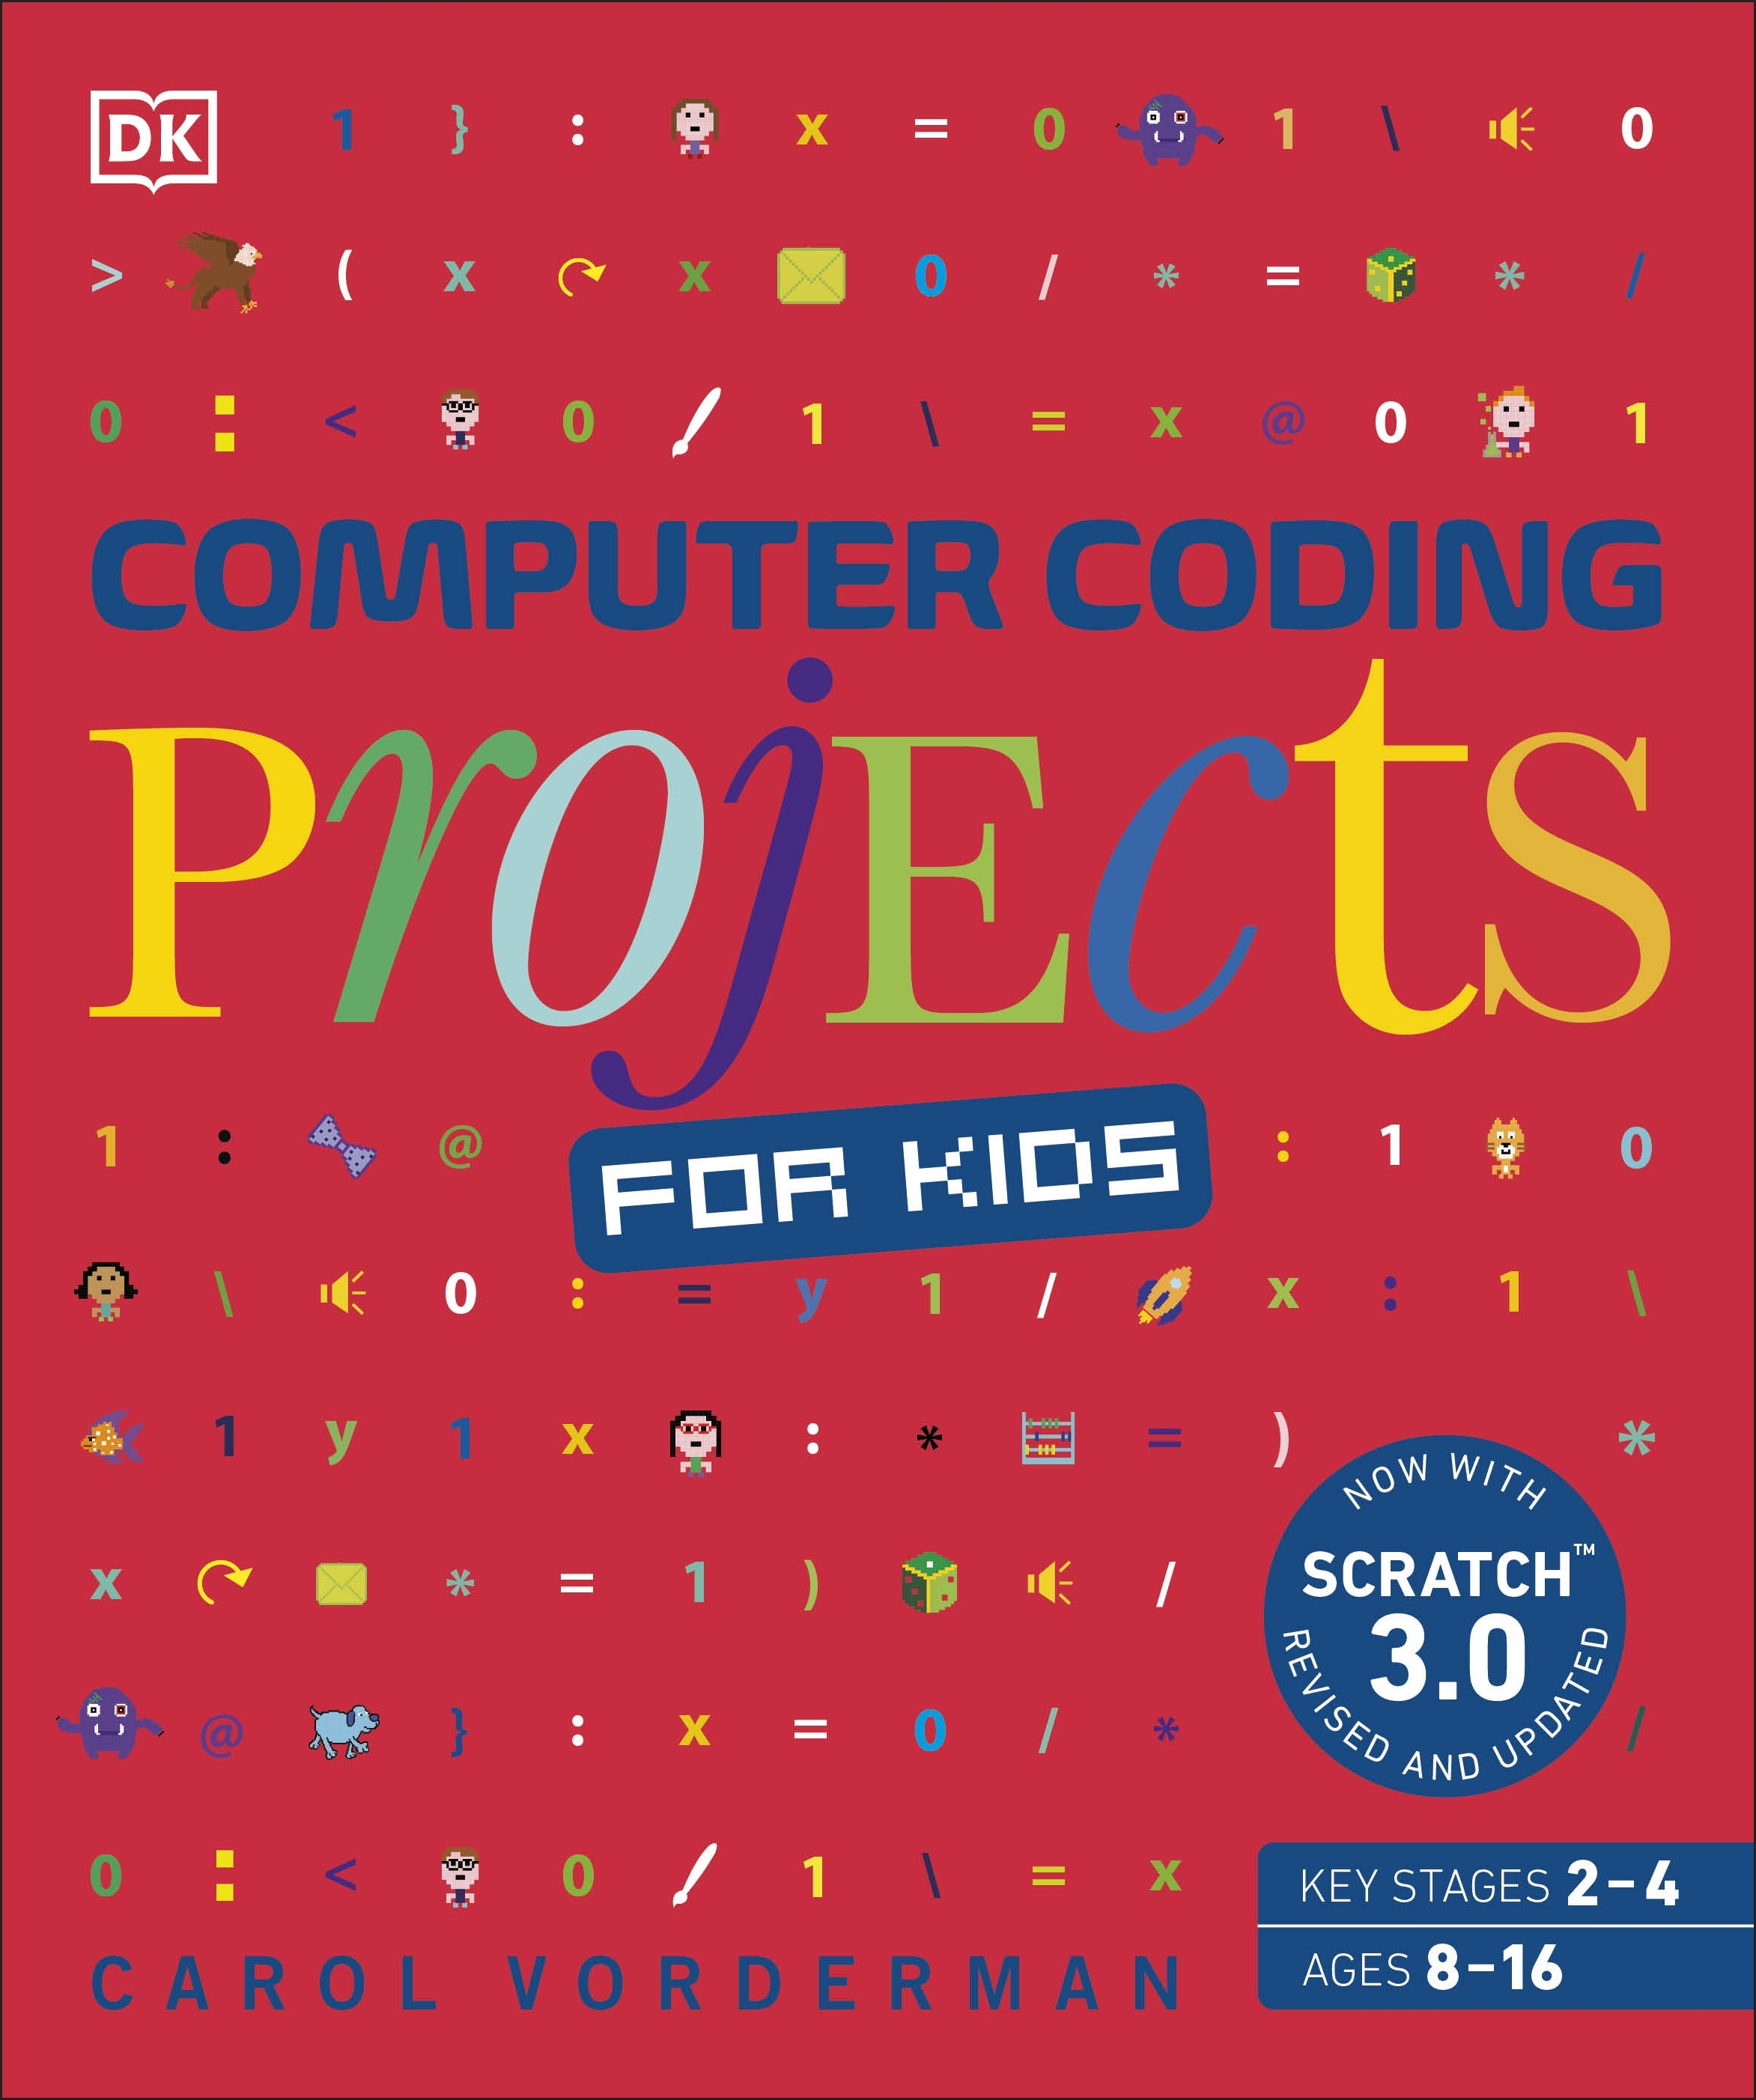 Computer Coding Projects for Kids by DK - Penguin Books New